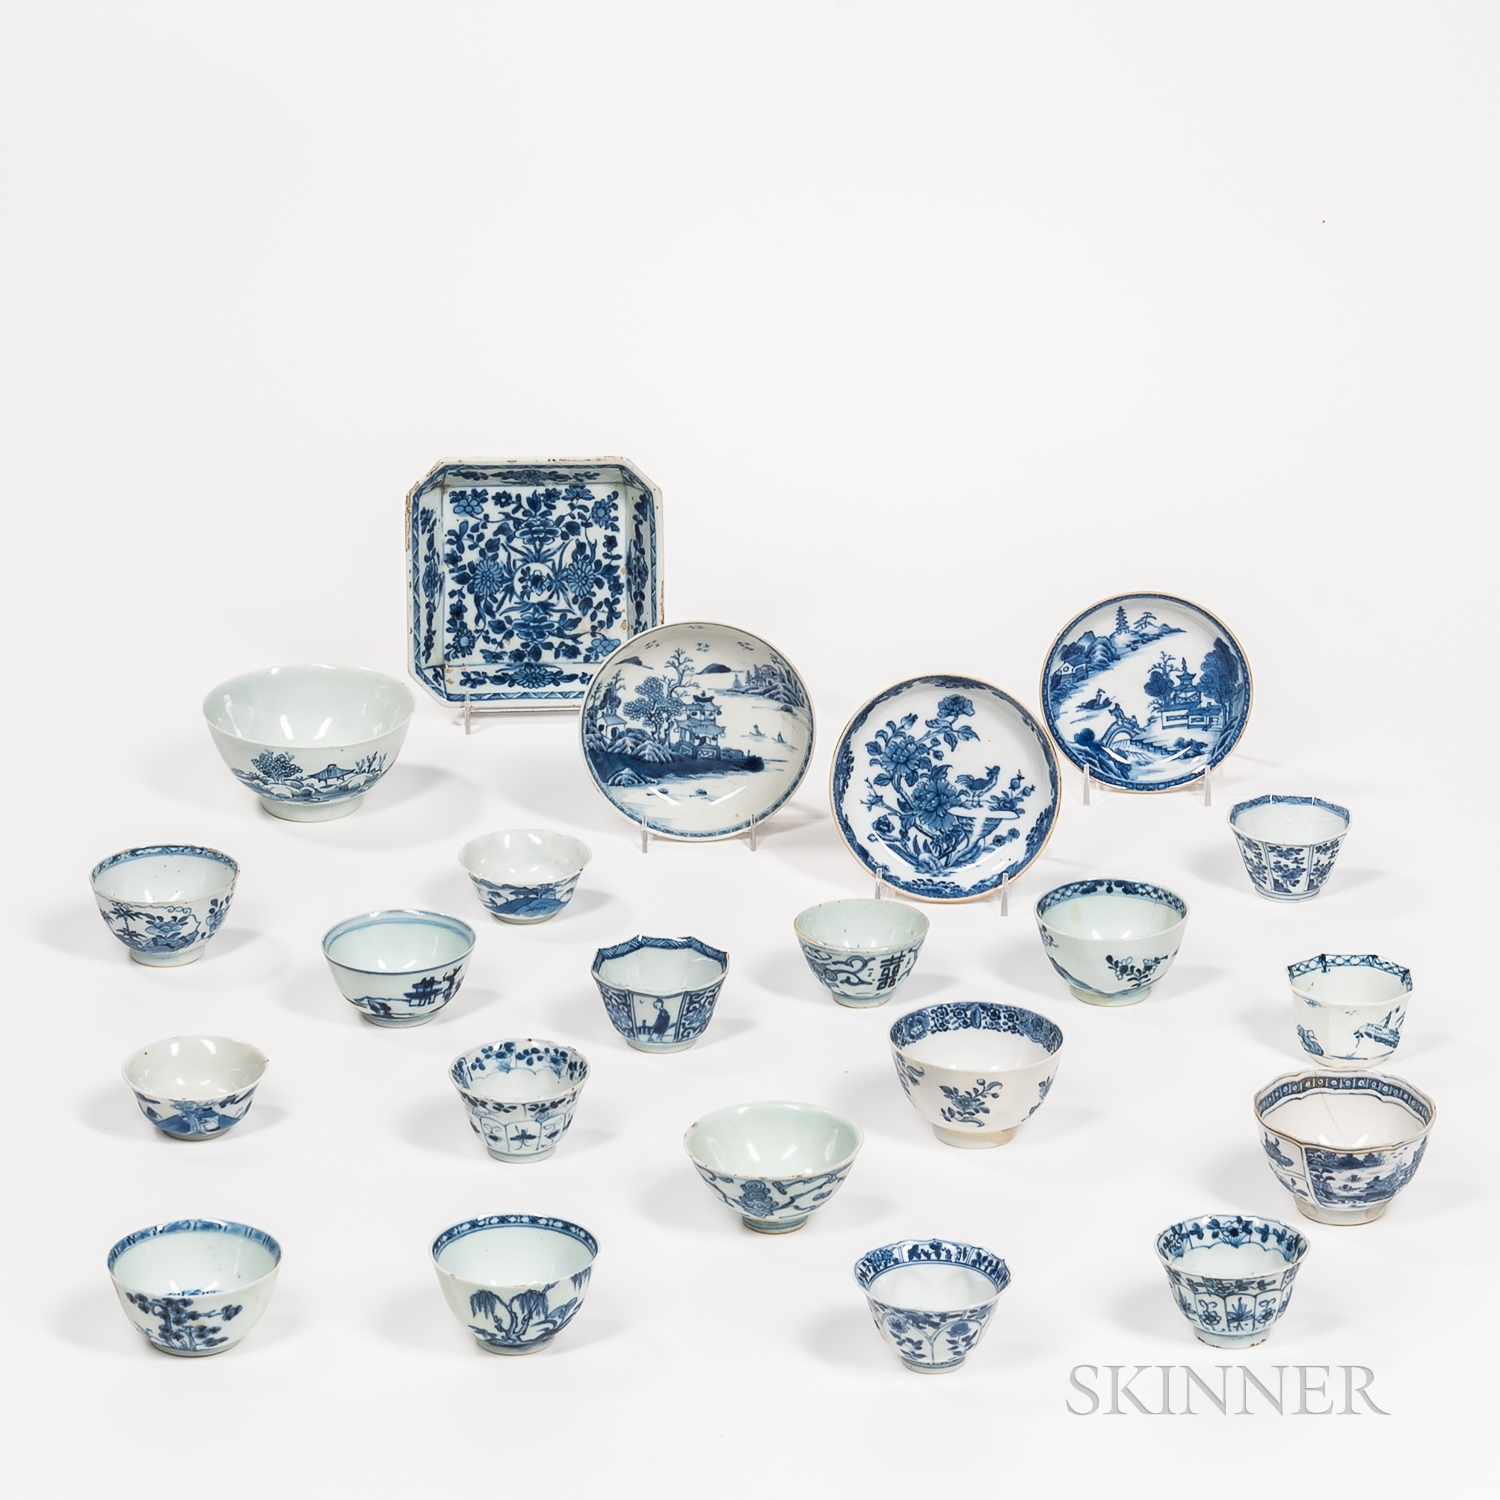 Twenty-two Blue and White Cups and Plates